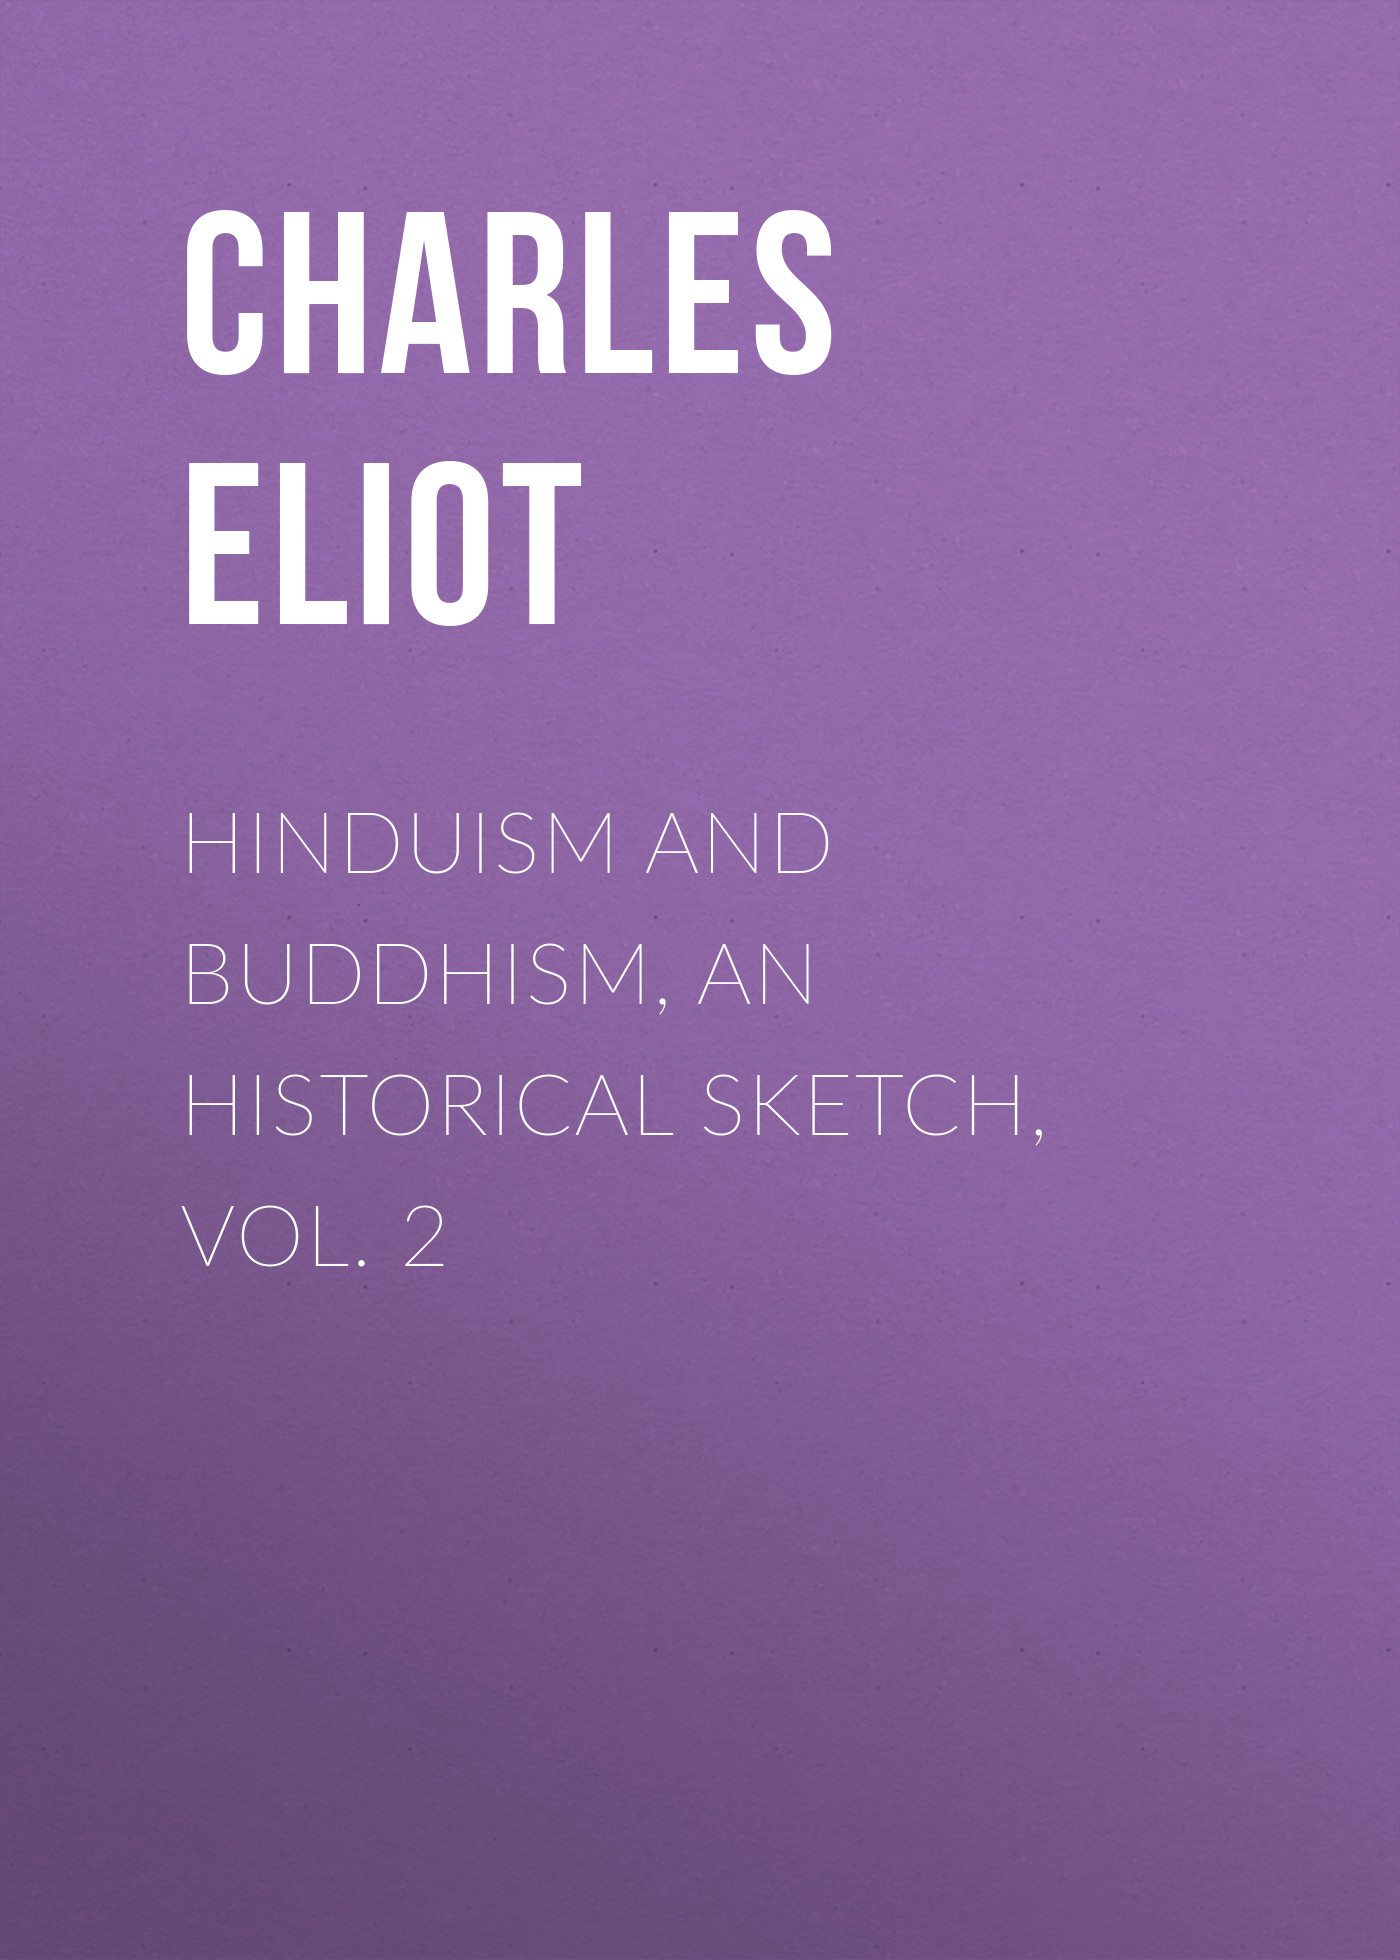 Charles Eliot Hinduism and Buddhism, An Historical Sketch, Vol. 2